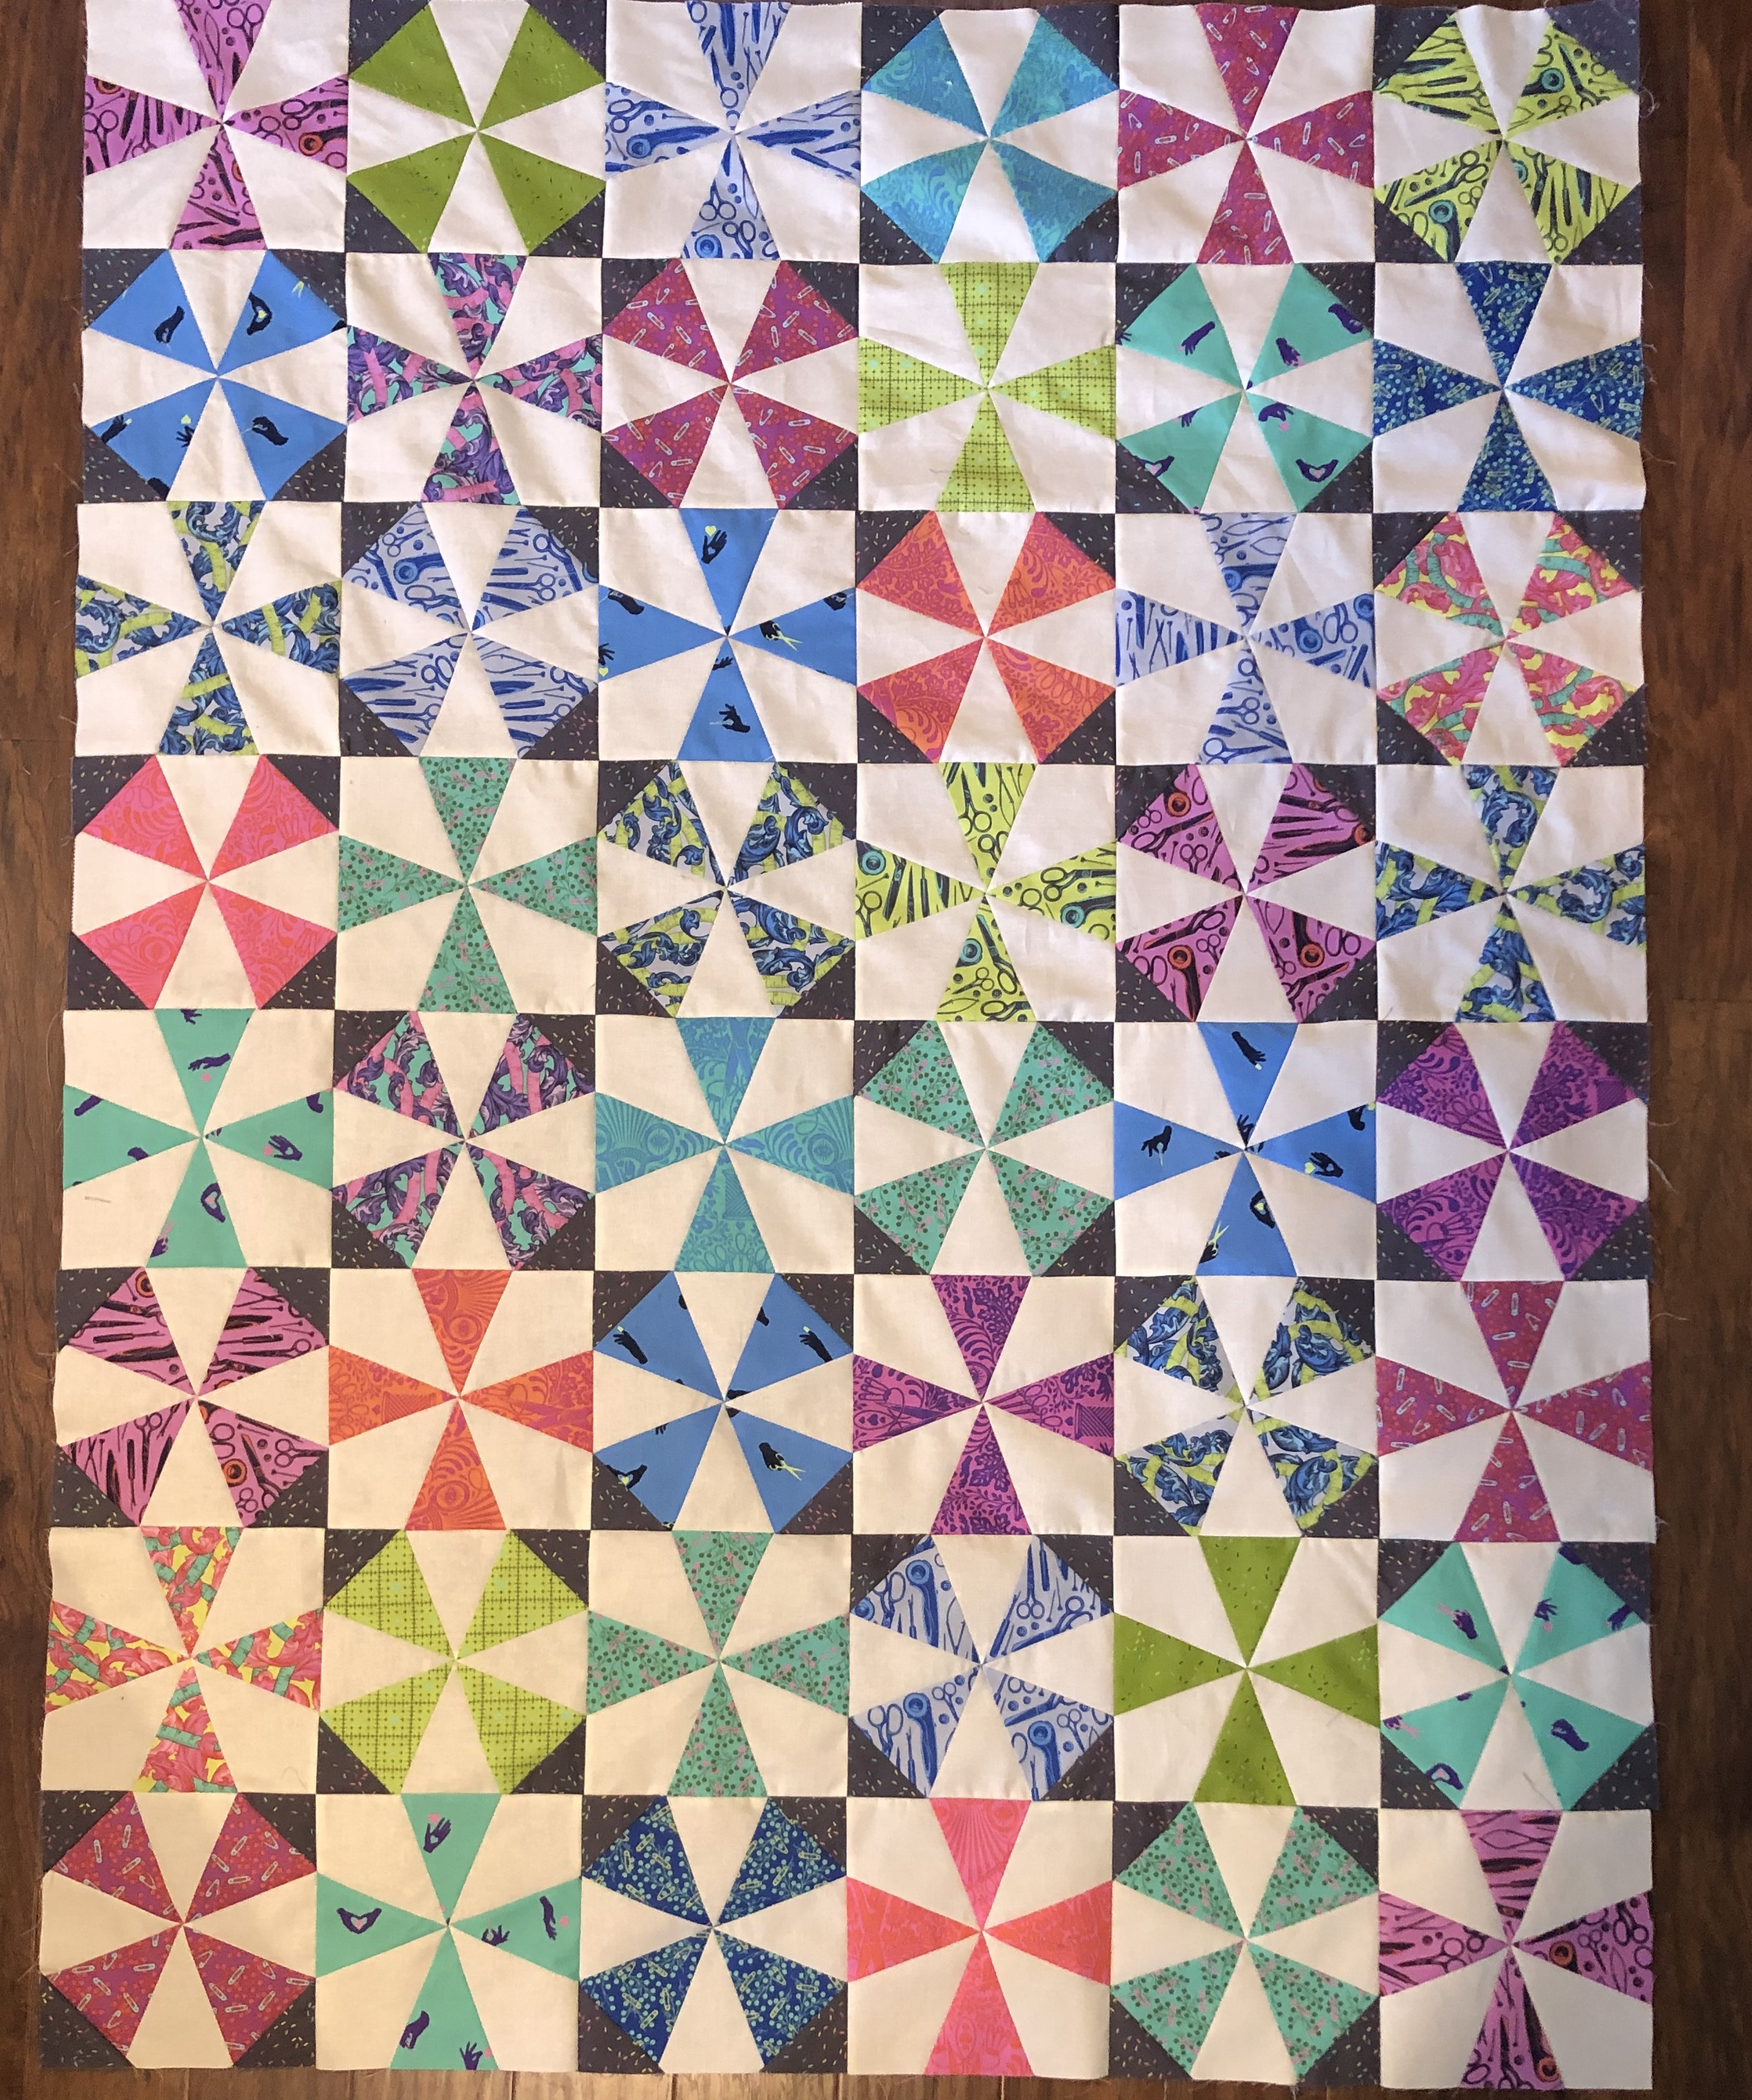 2020 my mystery quilt